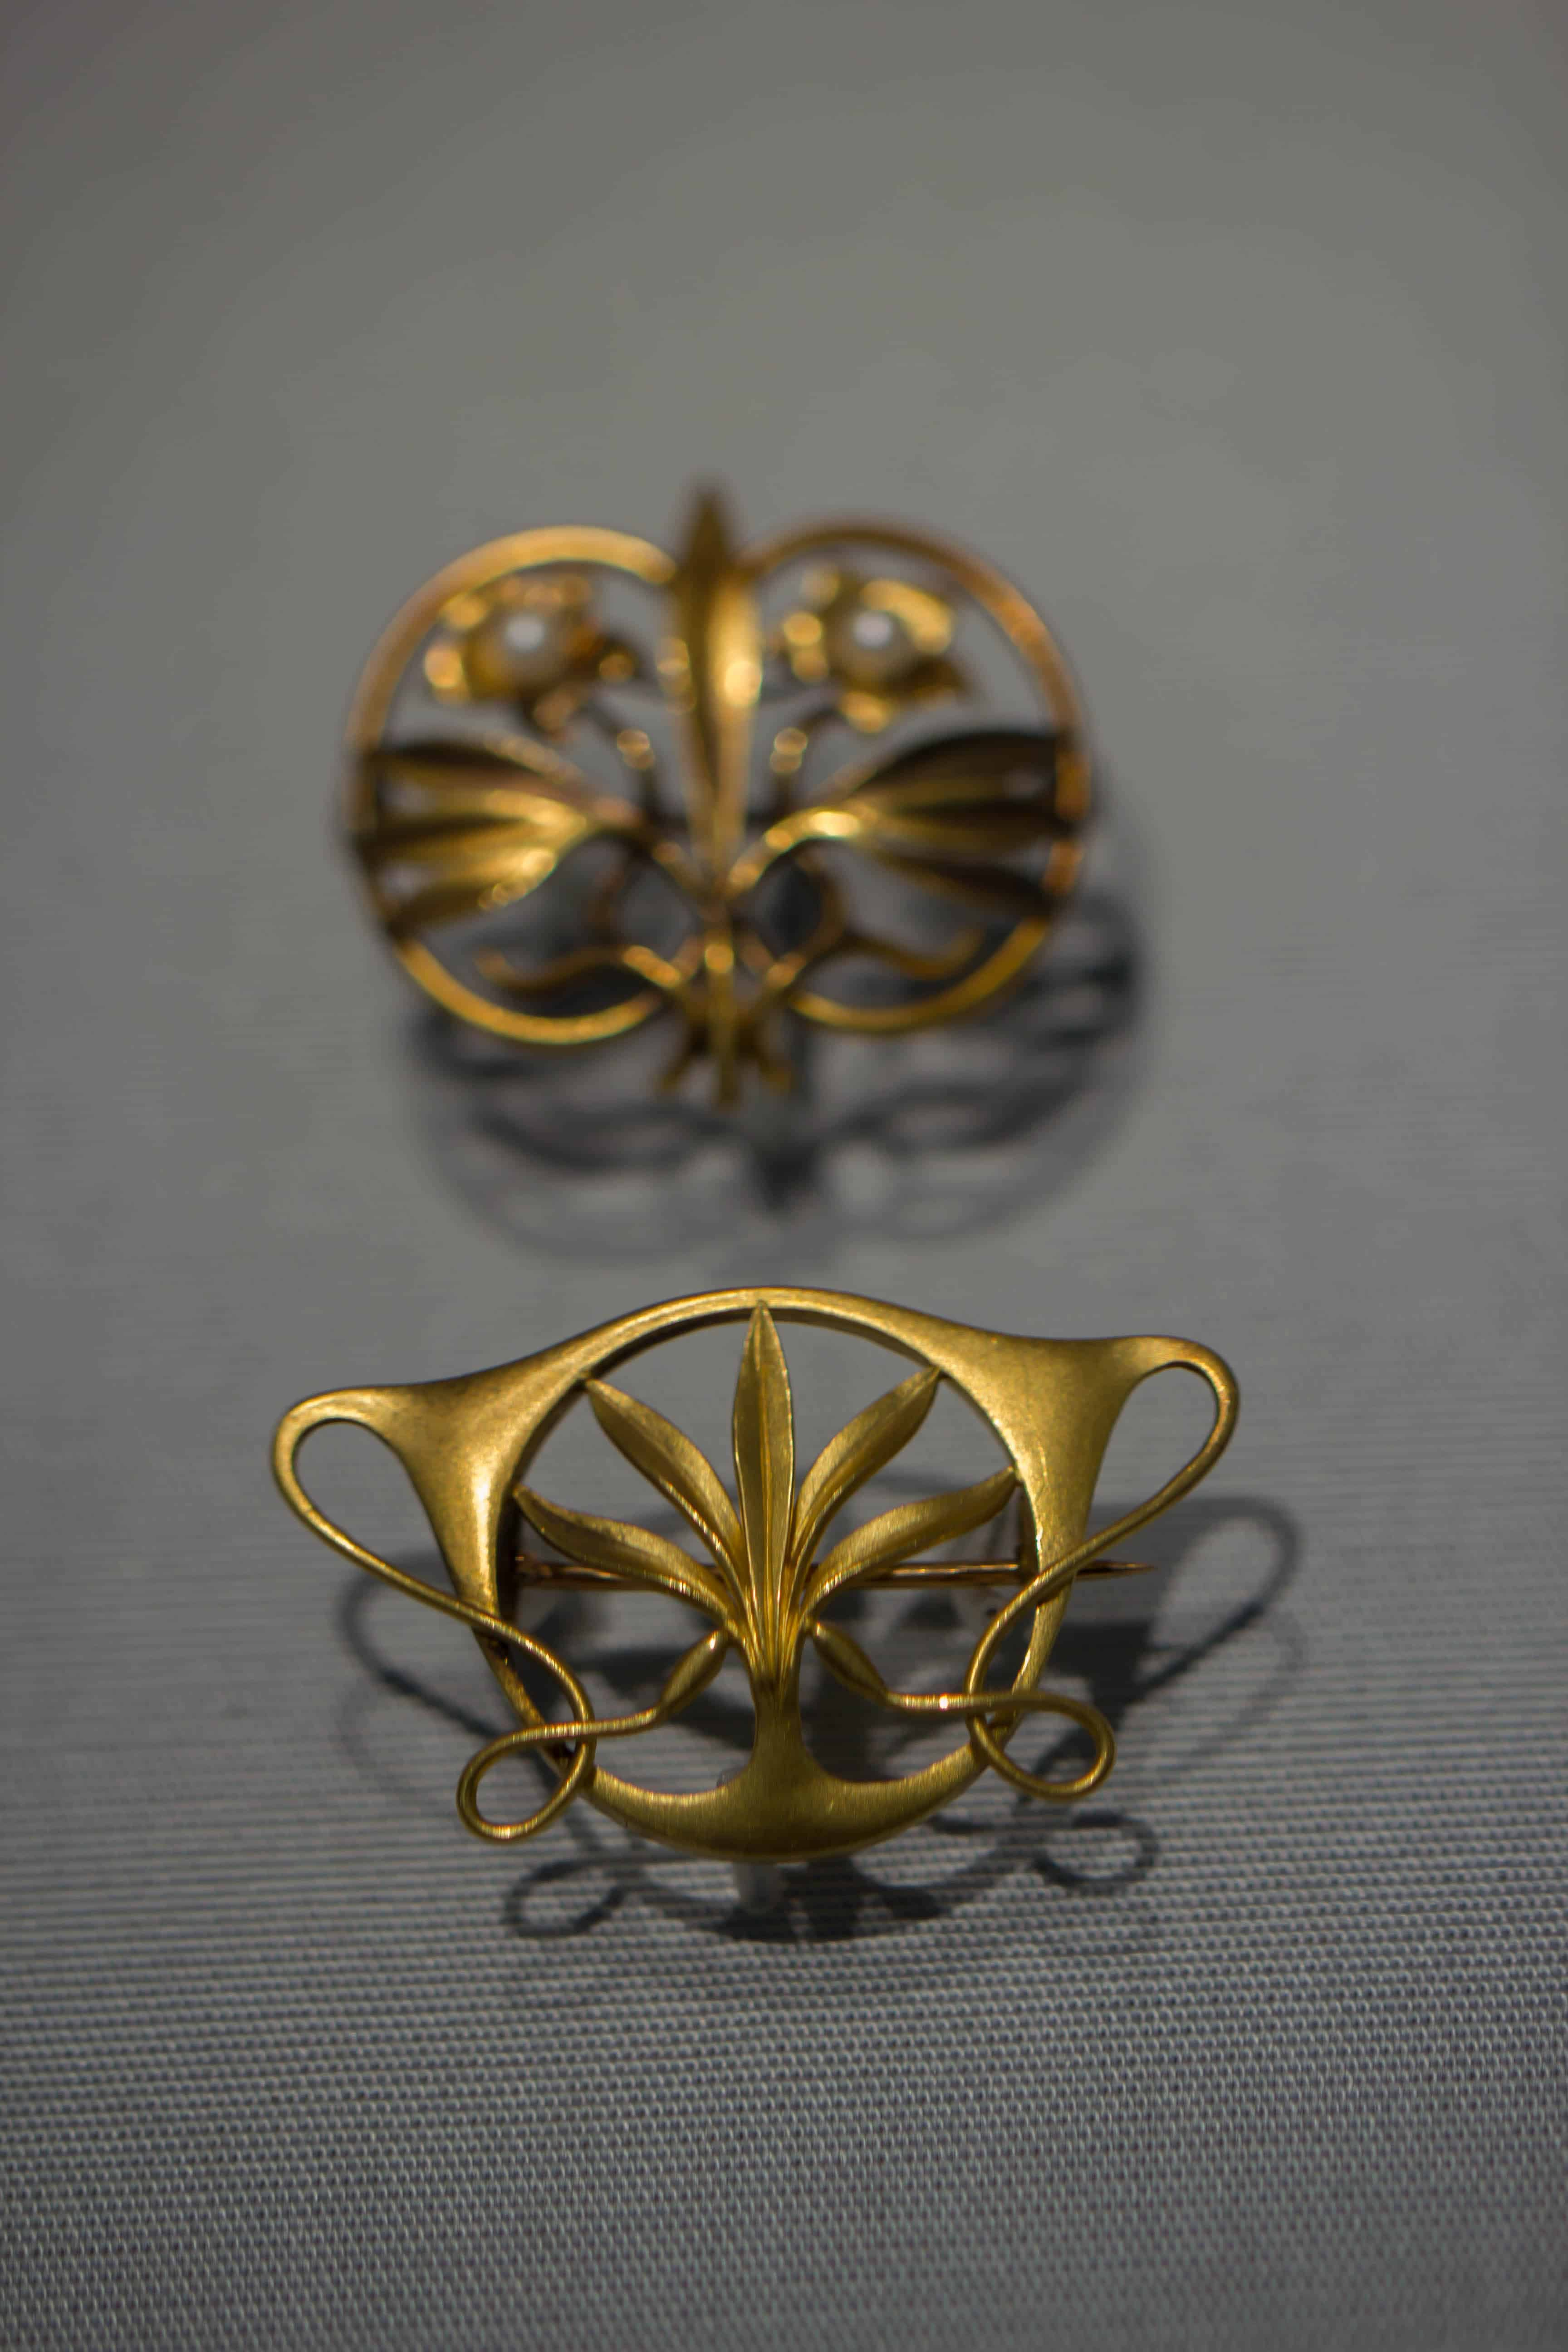 Golden art nouveau pin 22.jpg